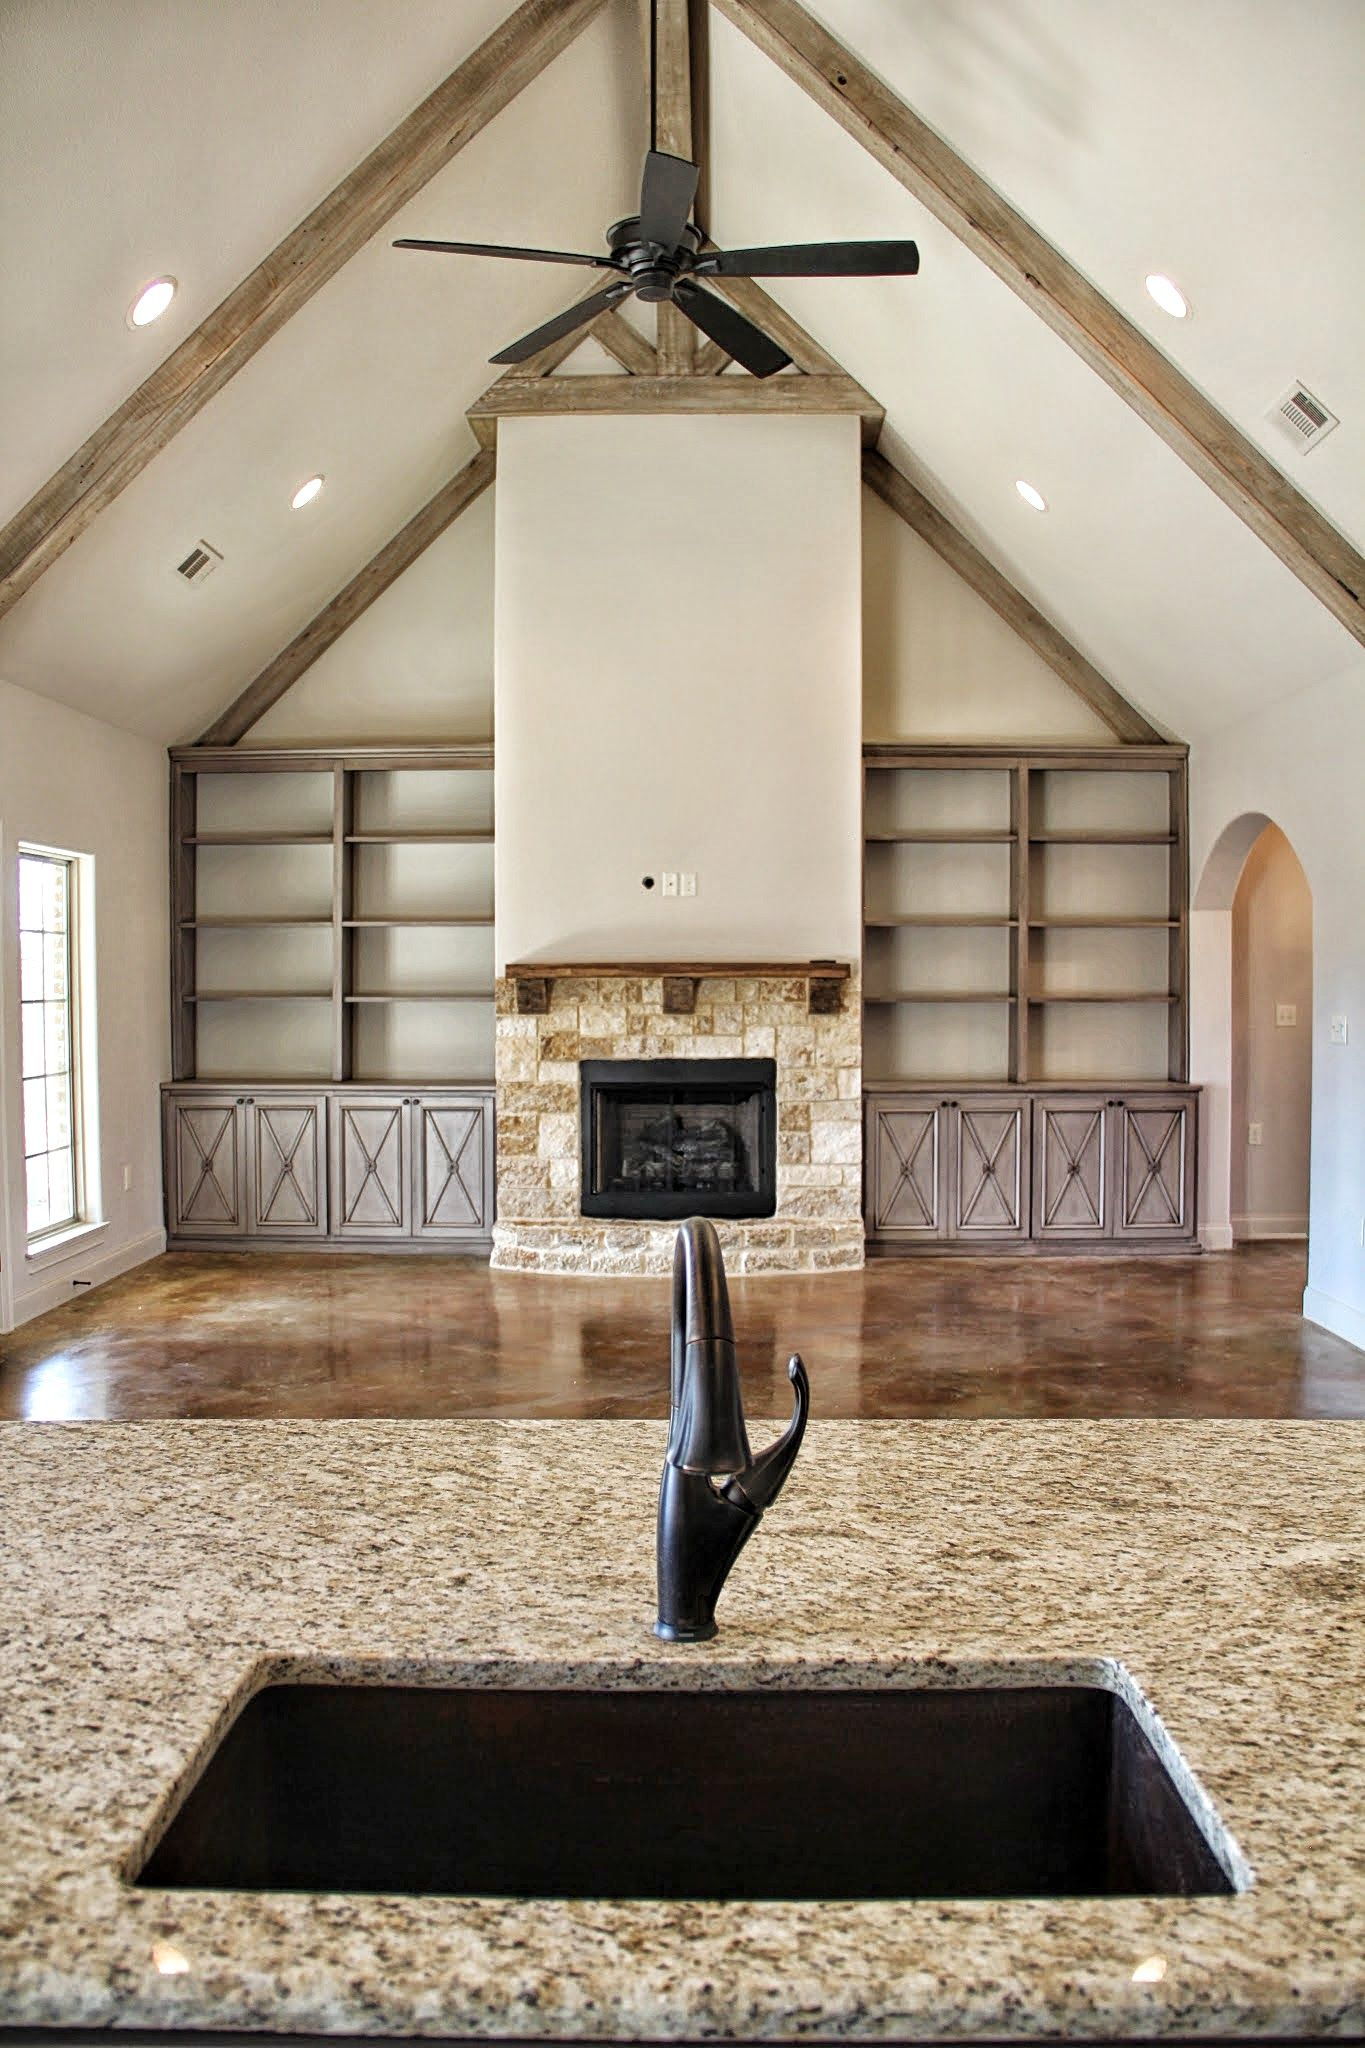 Vaulted Ceiling with Faux Painted Beams Photo Gallery ...